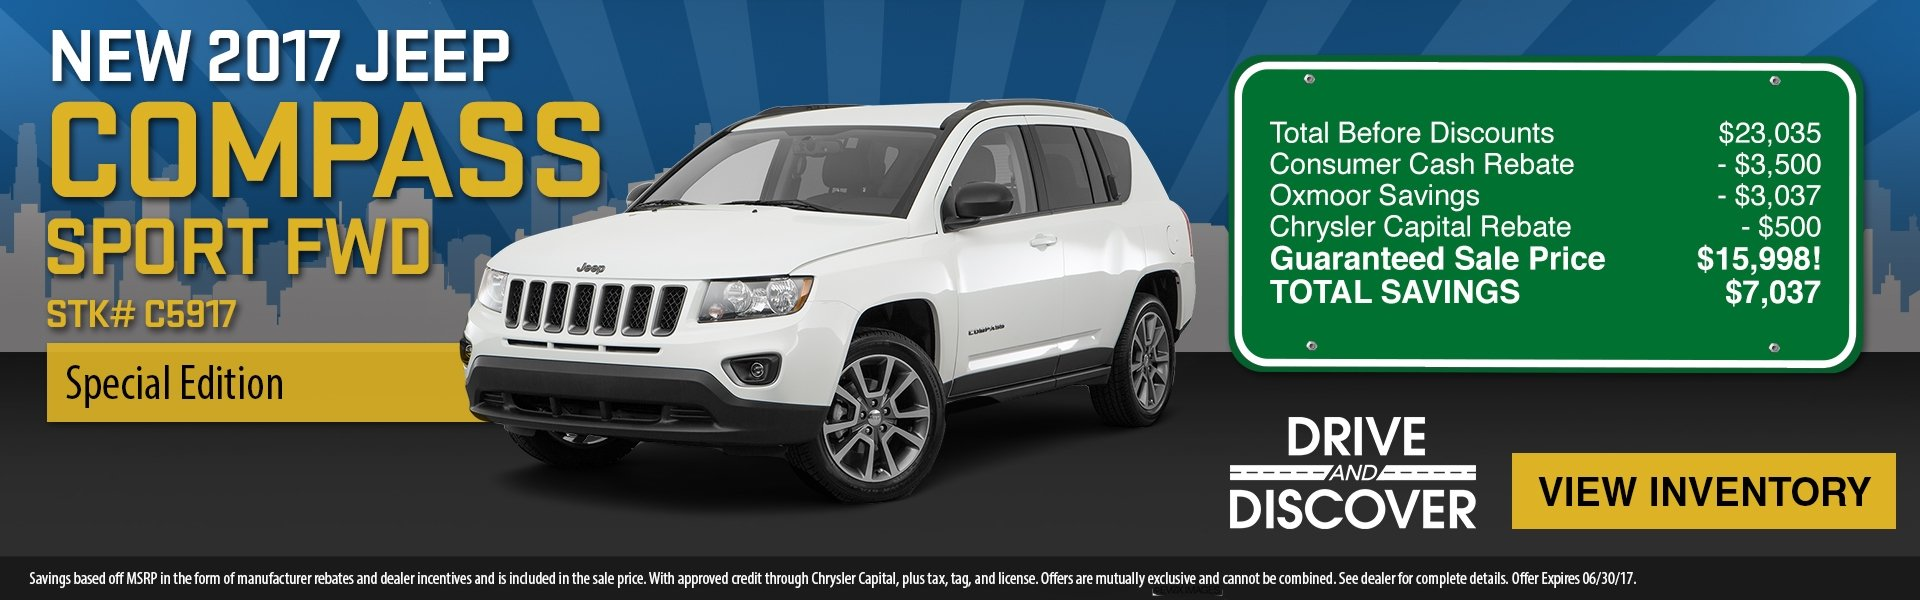 2017 Jeep Compass, save up to $7,037! See dealer for details.